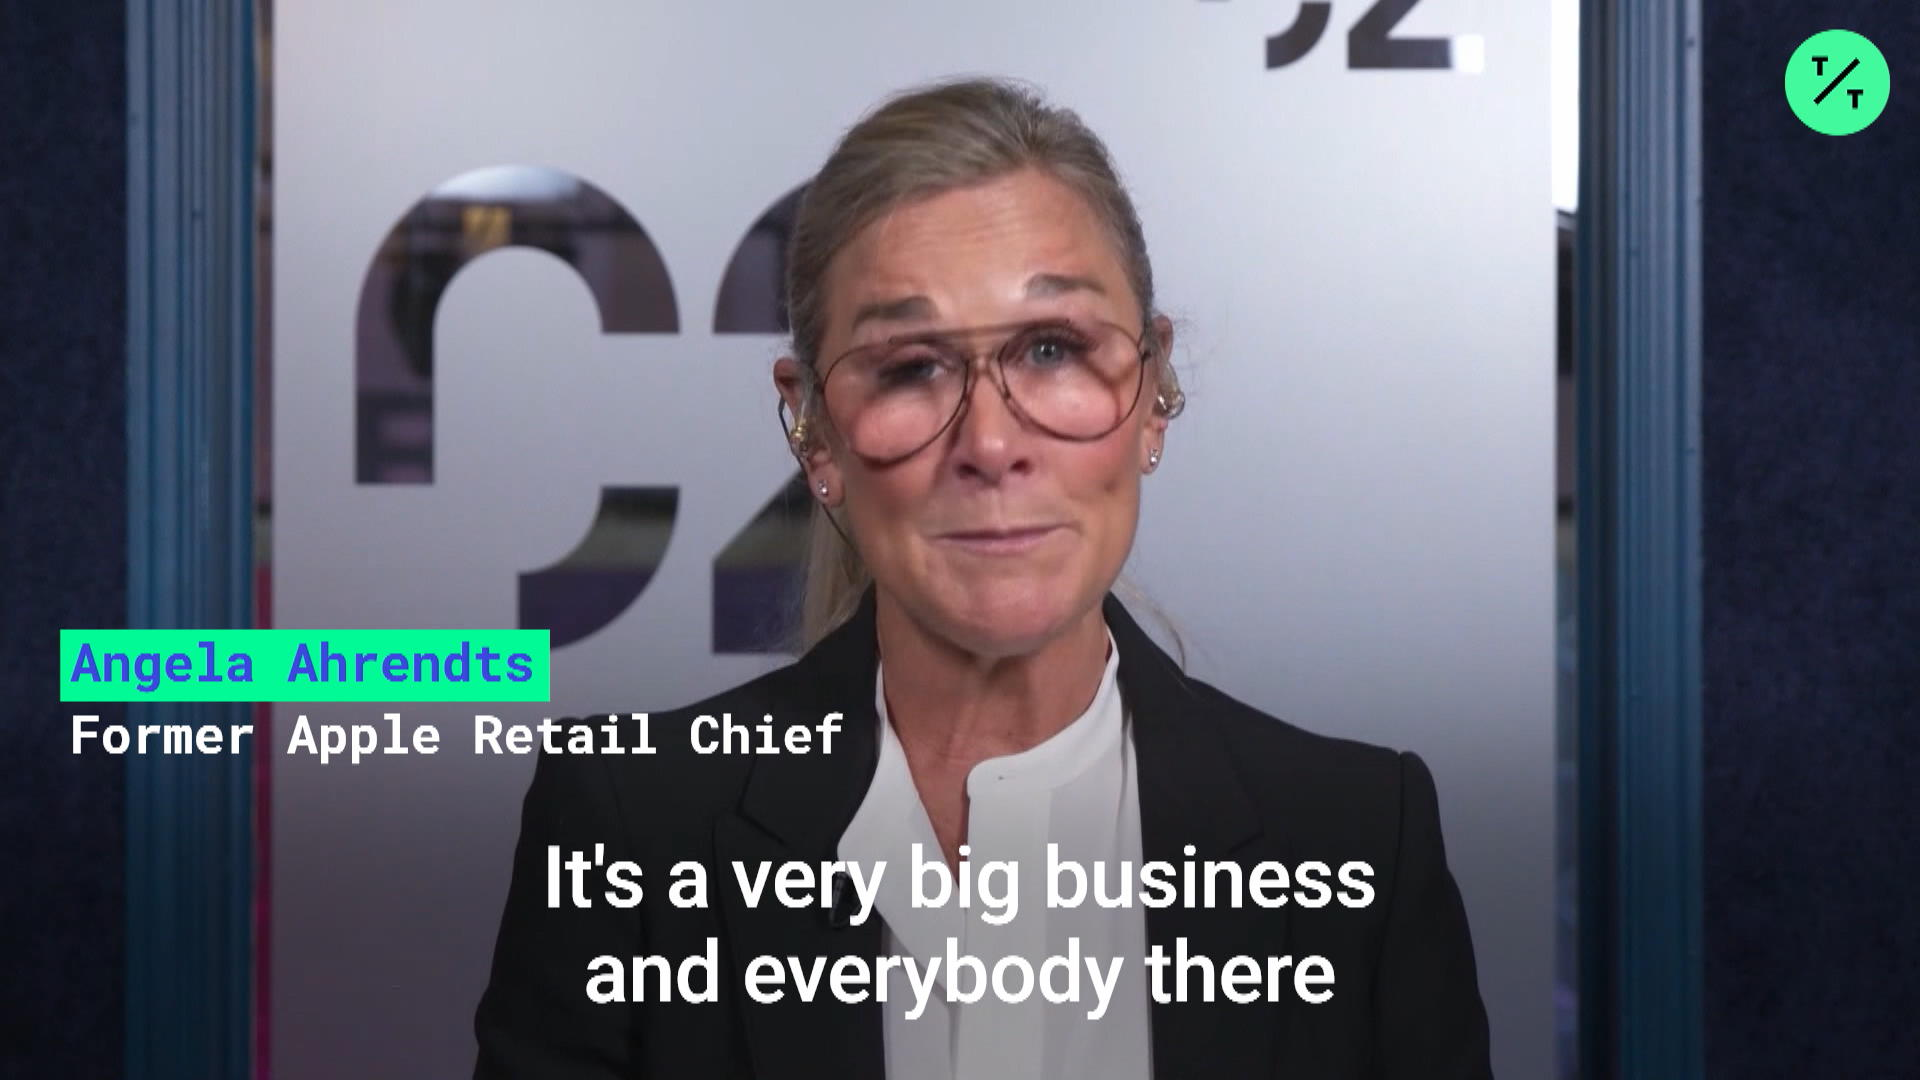 Angela Ahrendts on Her Mission at Apple